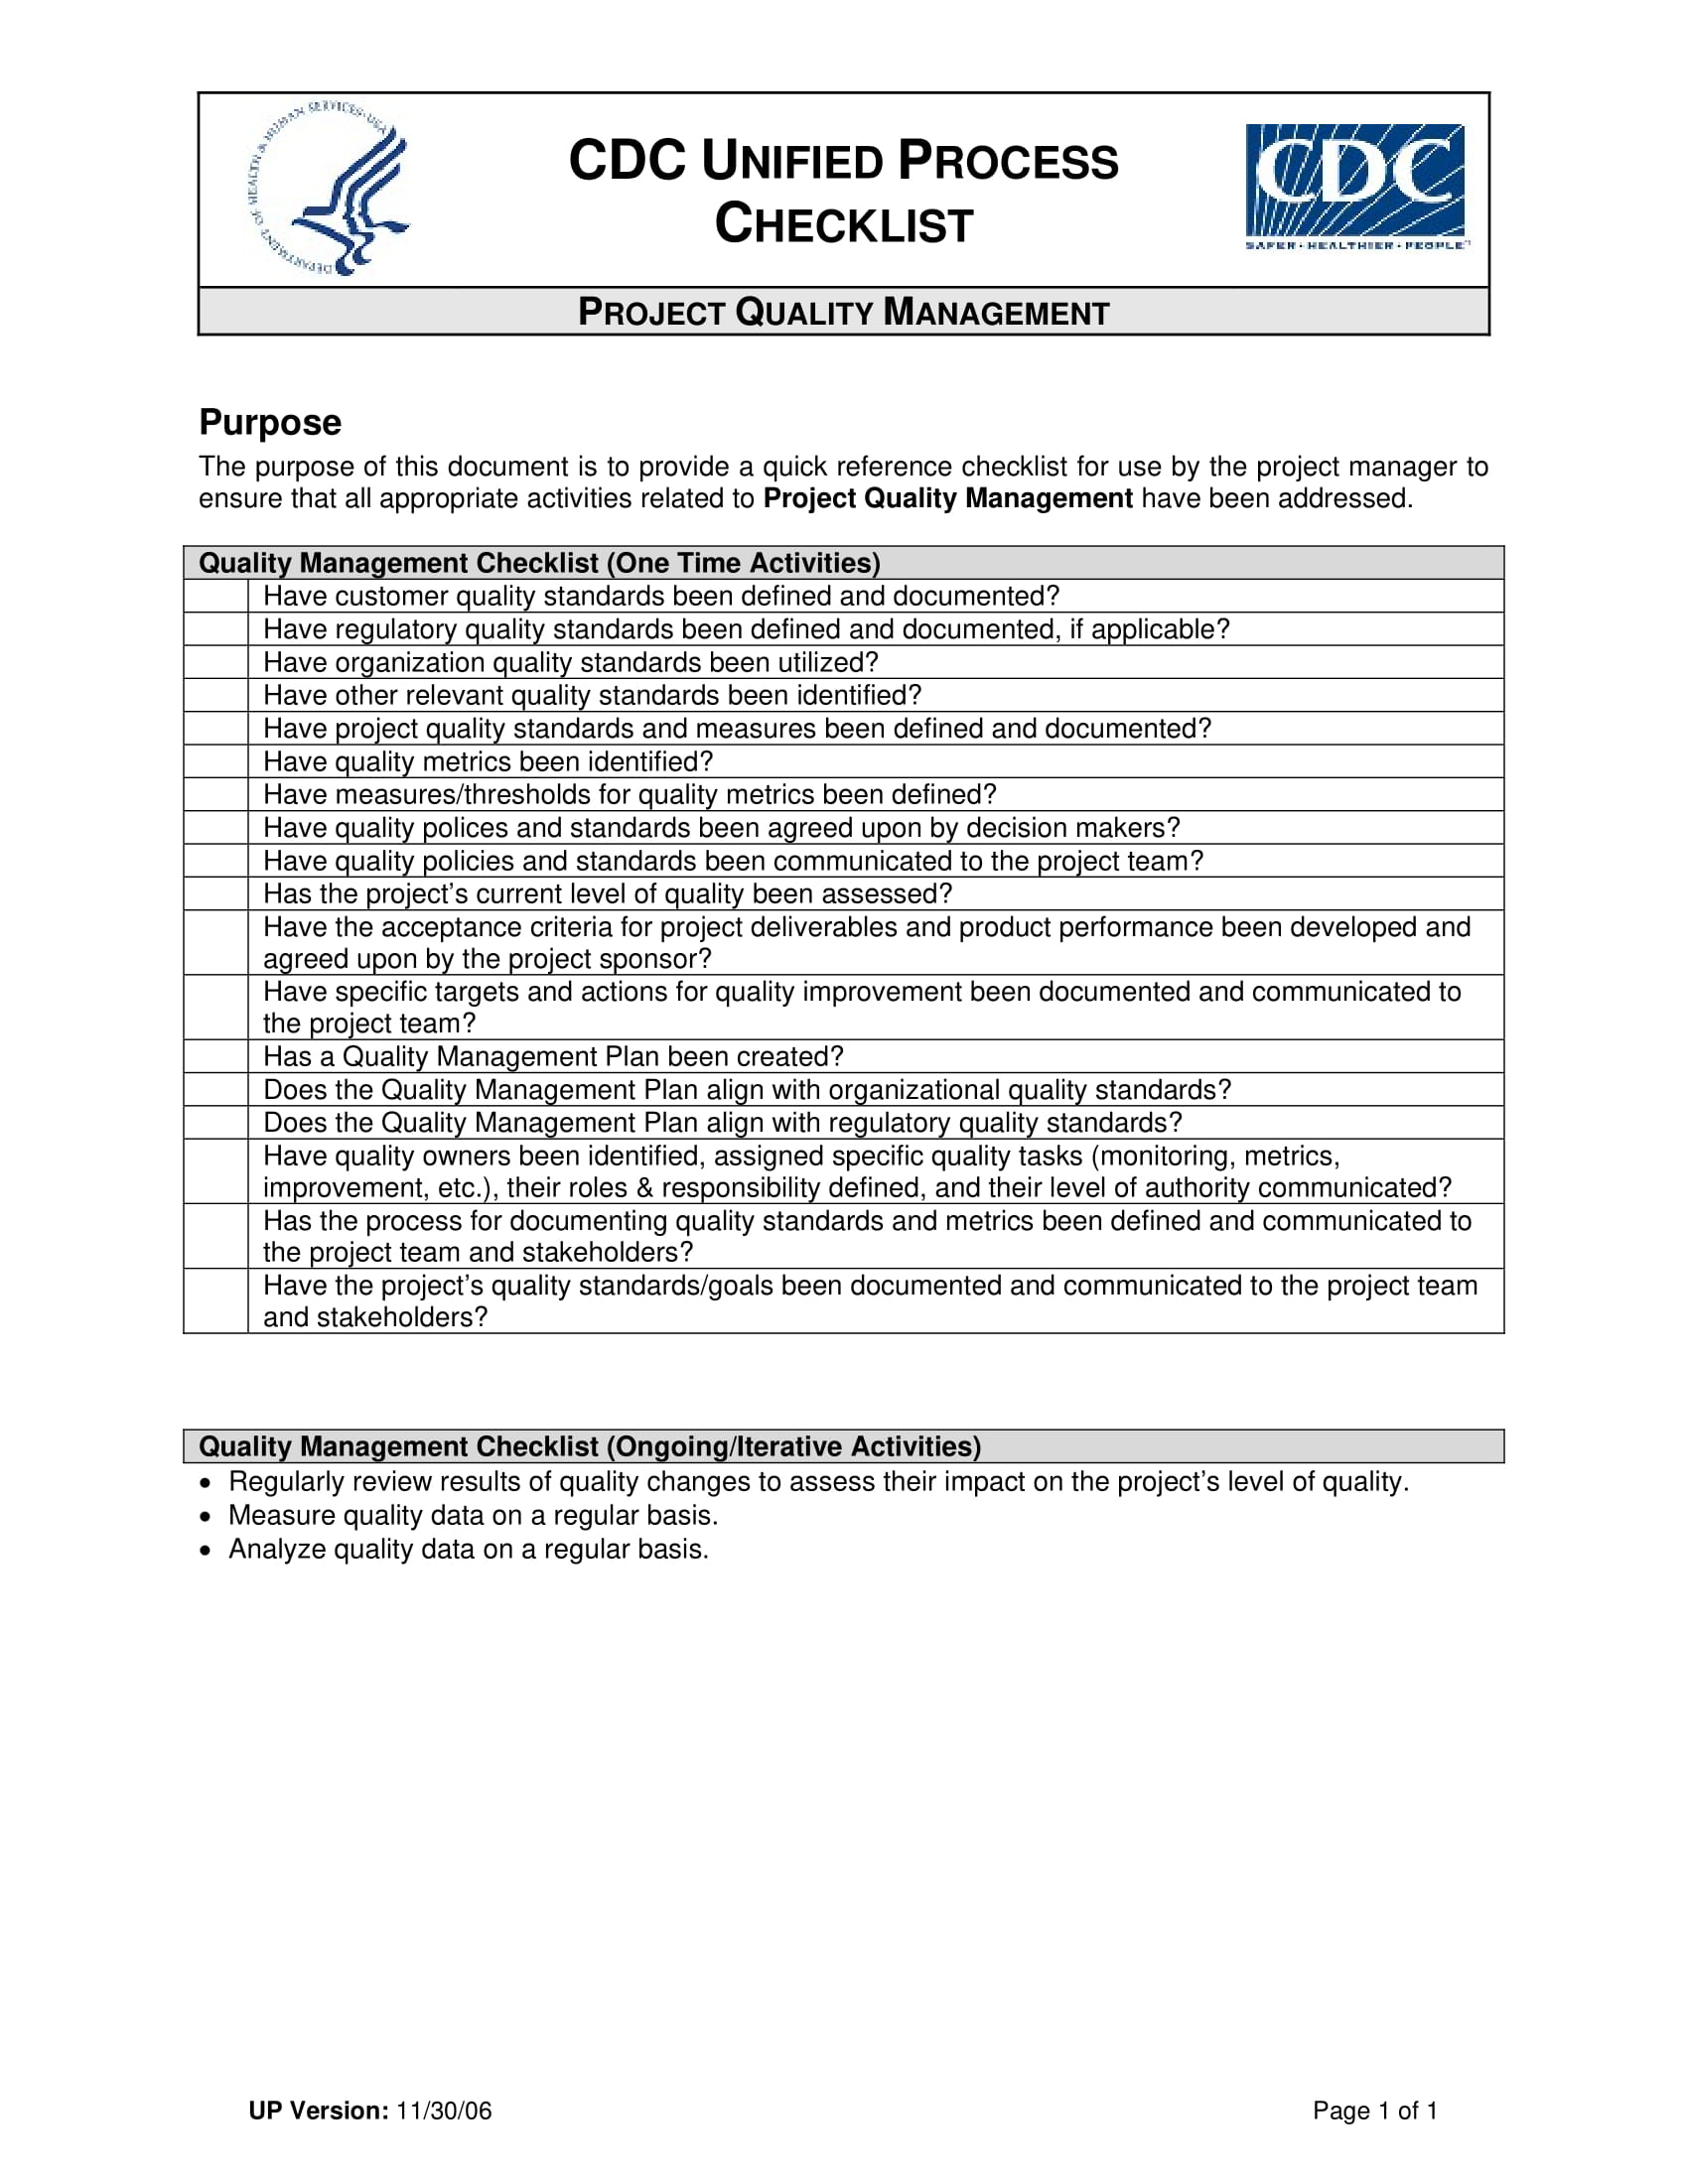 9+ Performance Management Checklist Examples